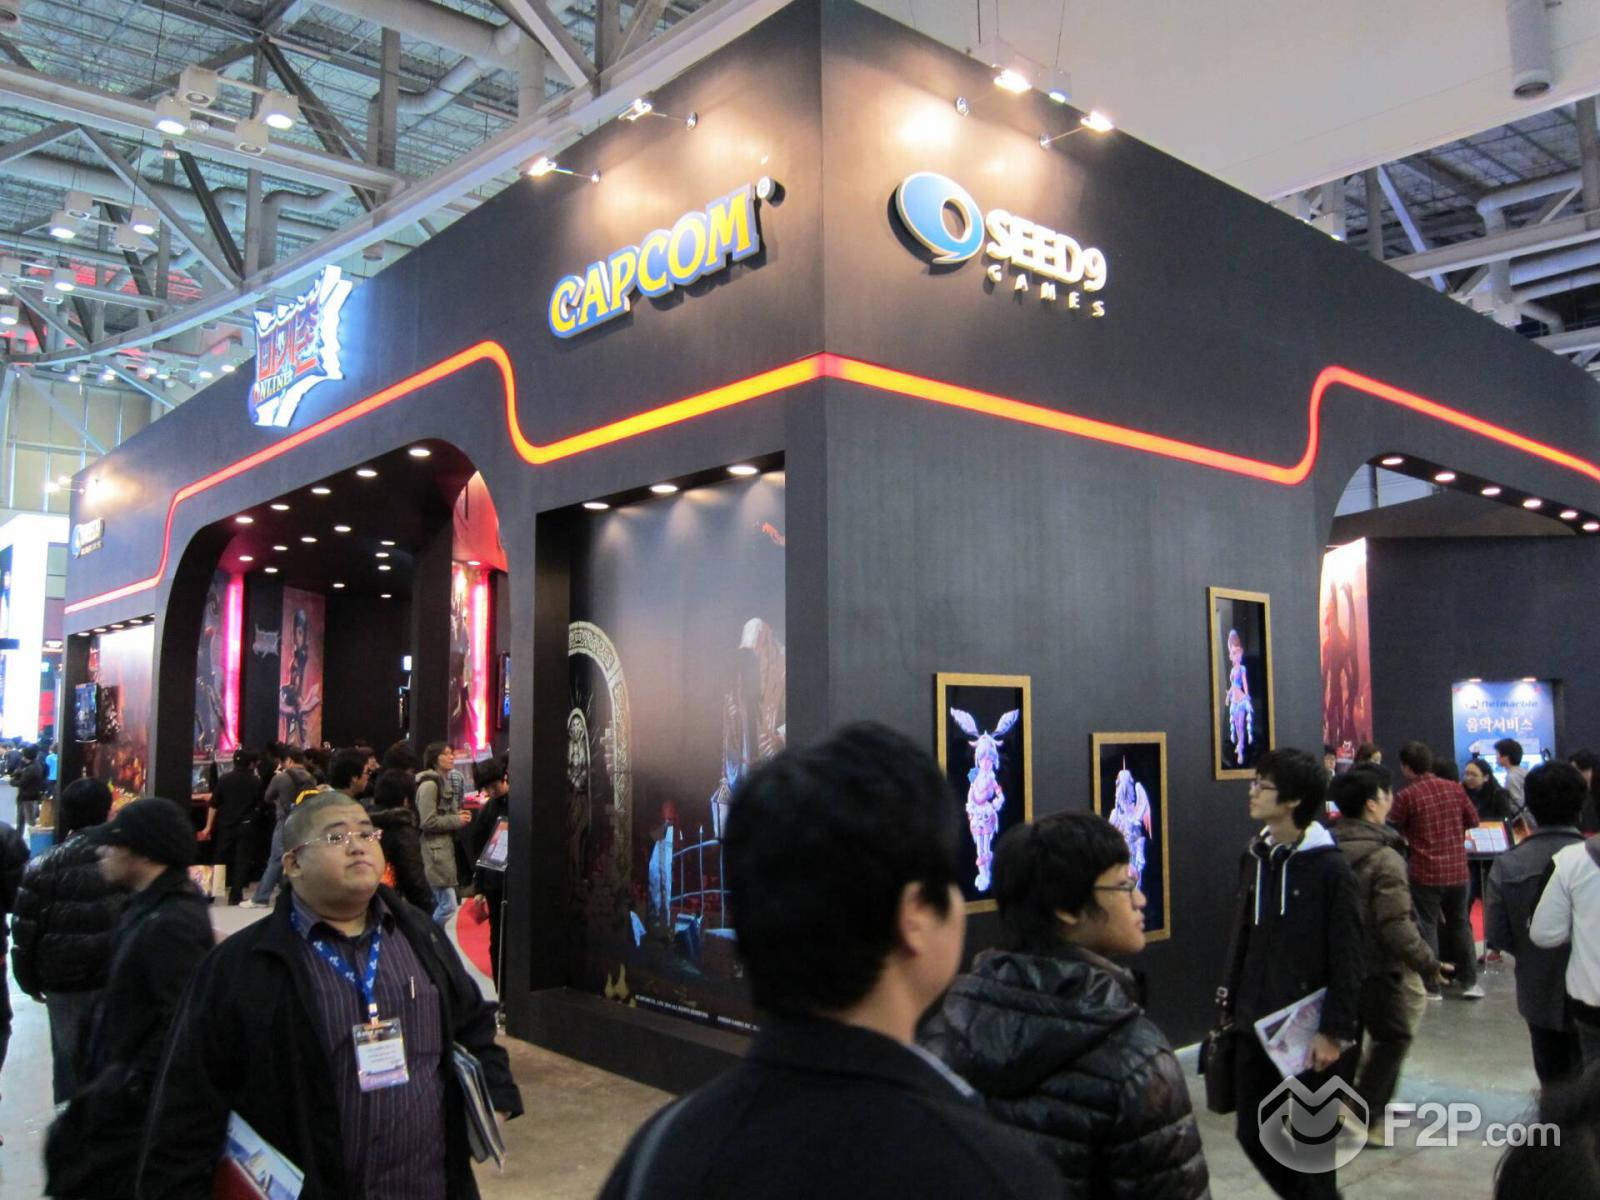 Click image for larger version.Name:G-Star 2010 F2P second day 7.jpgViews:50Size:208.2 KBID:2090